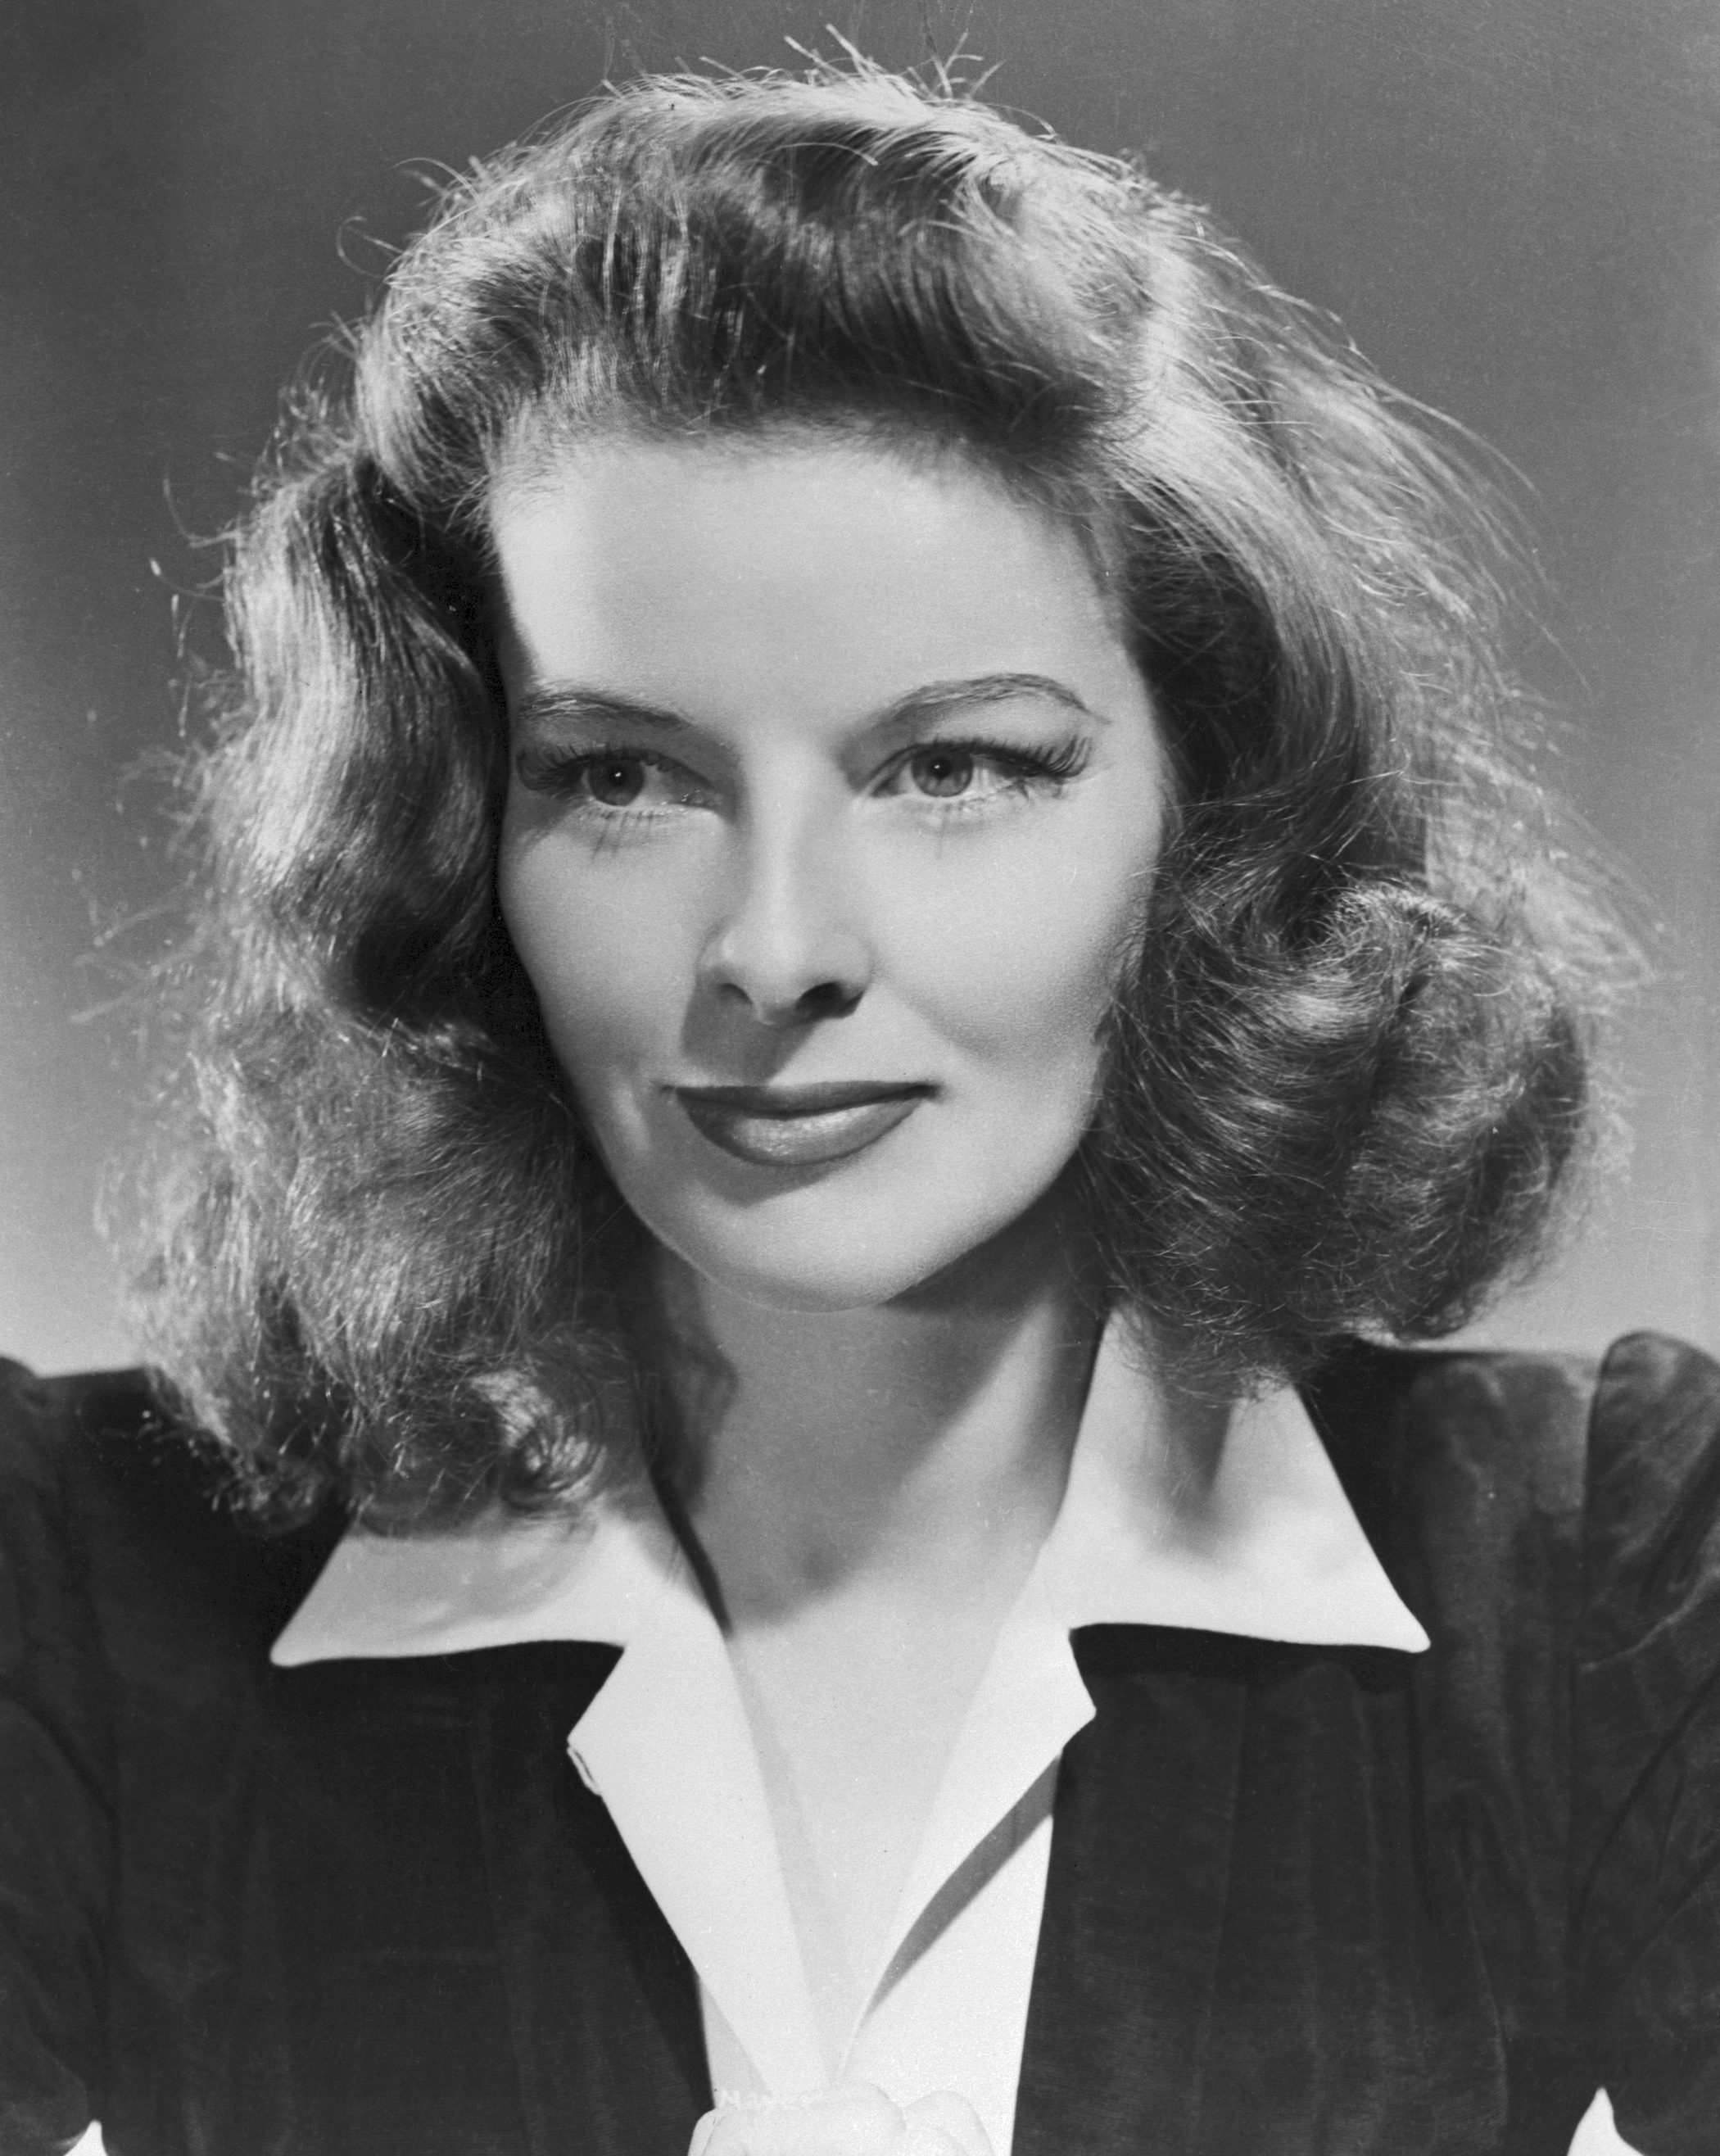 Katharine Hepburn Wikipedia Sexy Dress Scuba Combination Angela